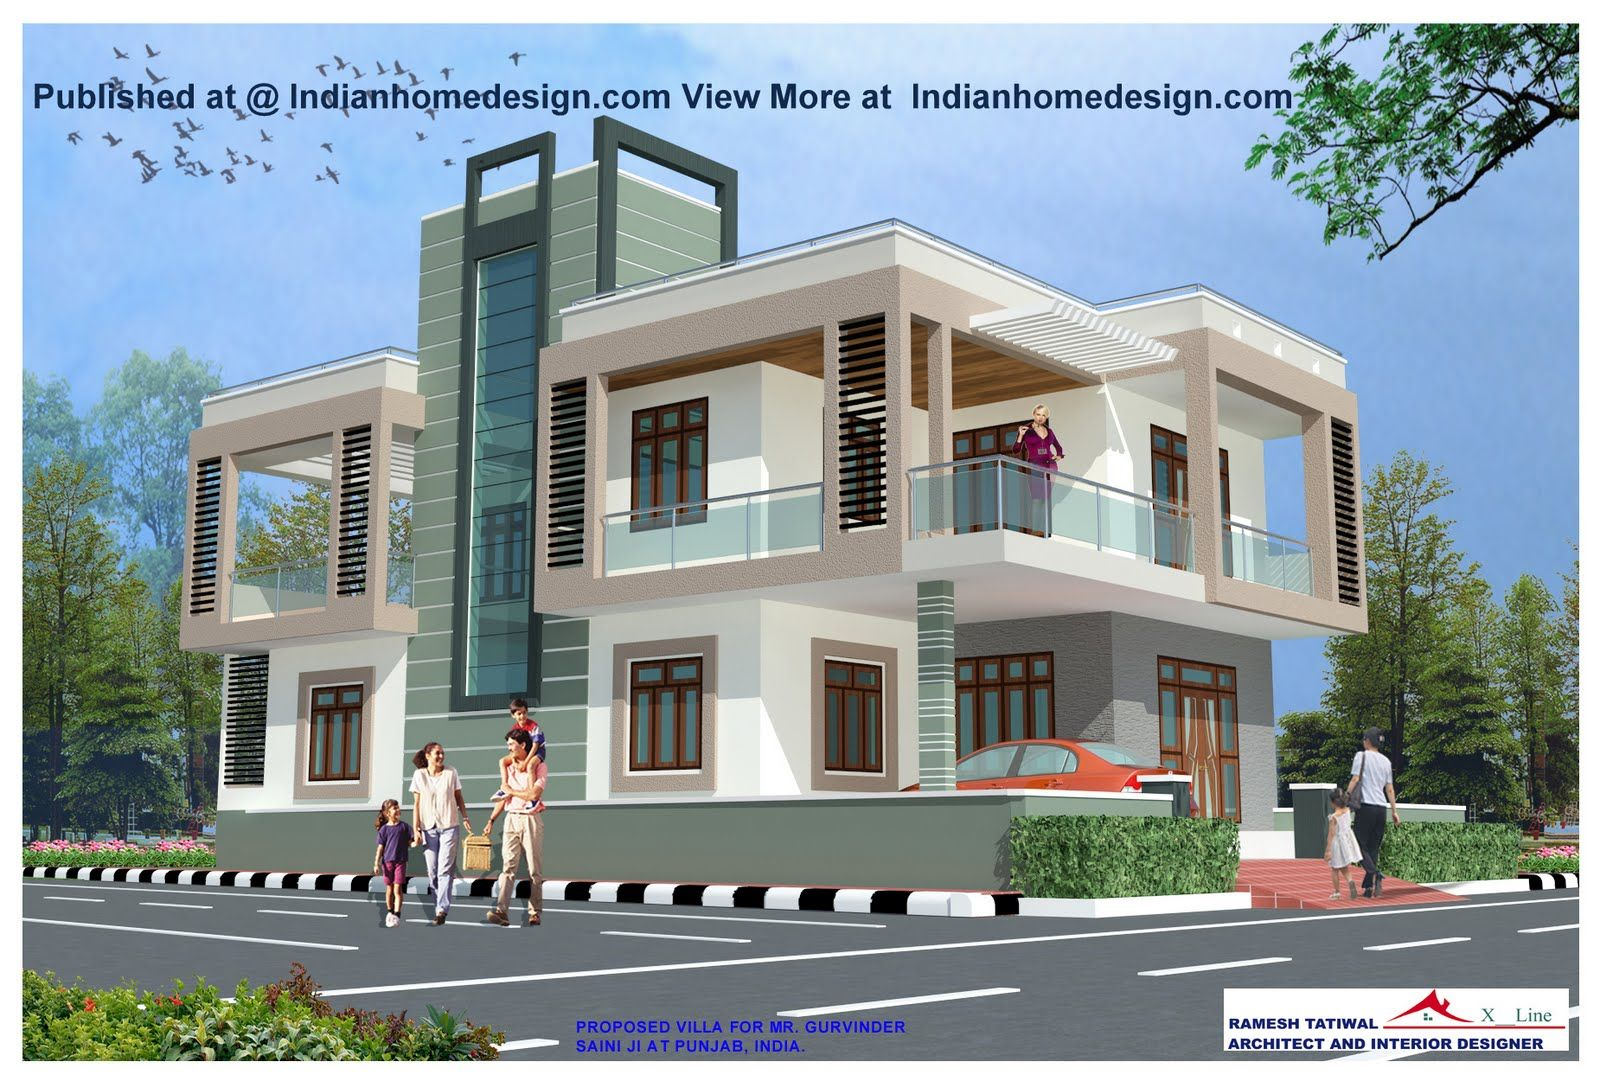 Modern exteriors villas design rajasthan style home for Indian home design photos exterior